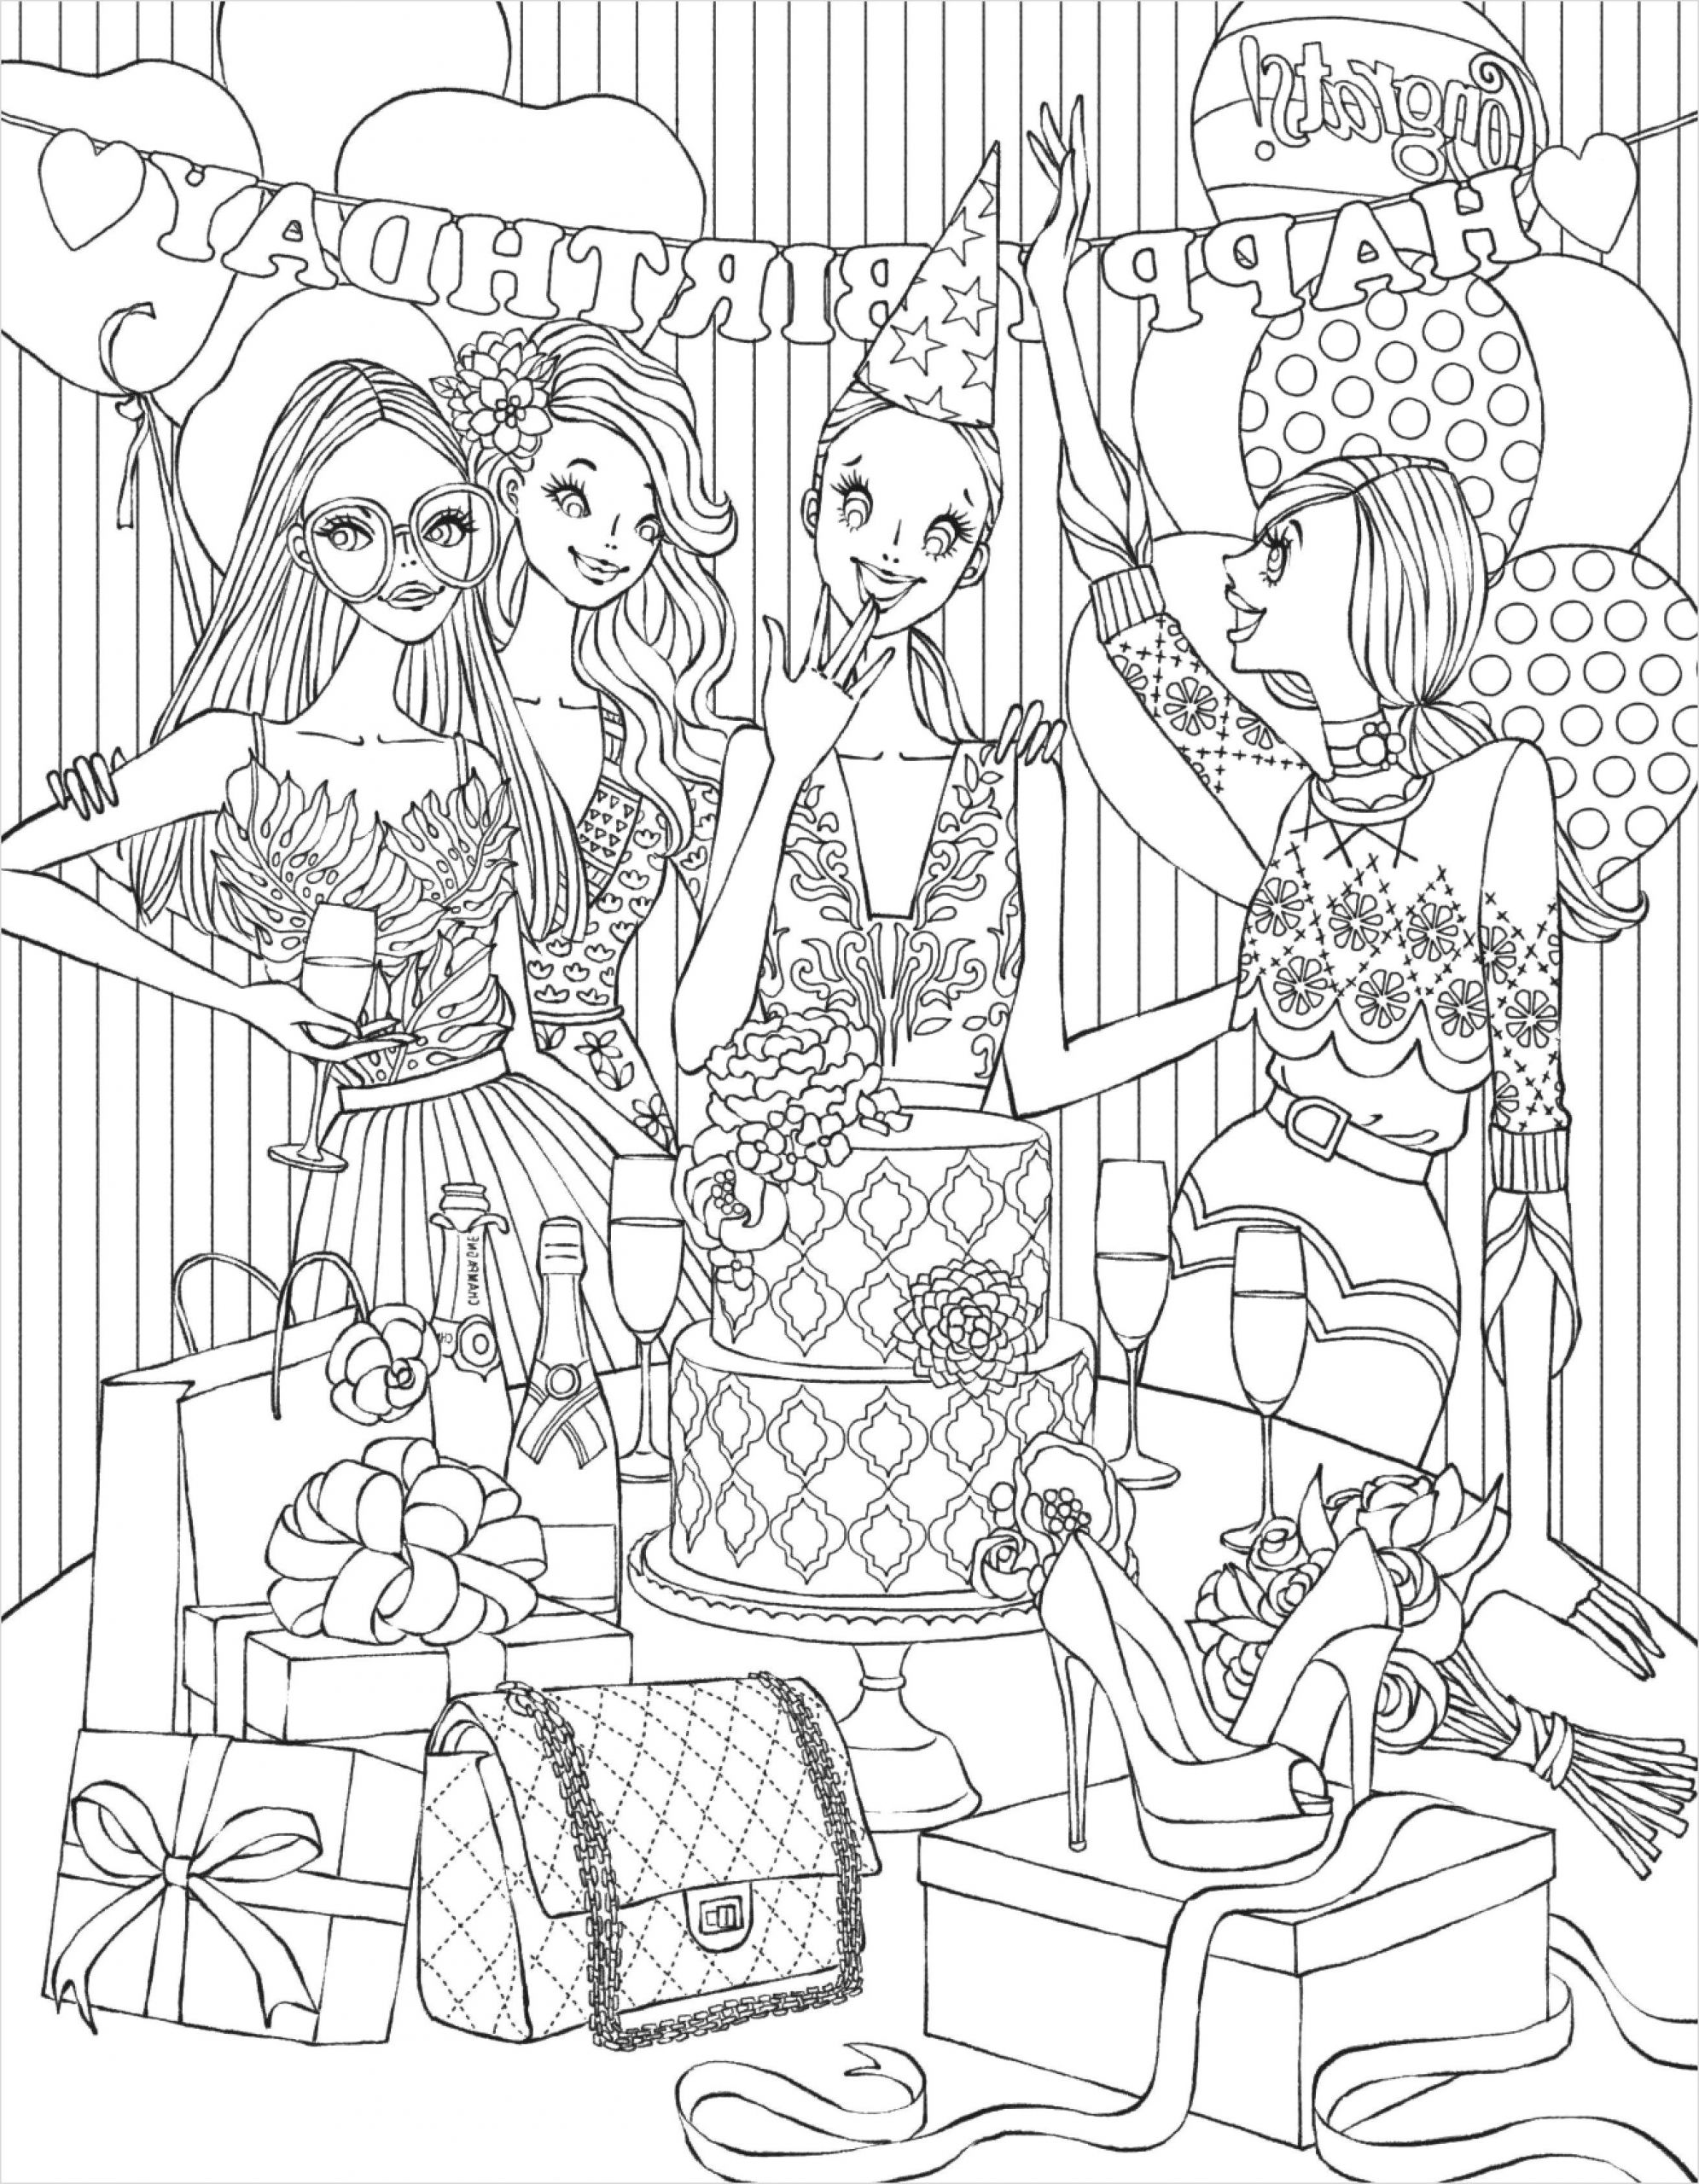 Coloring Pages : Coloring Pages To Print Out For Adults ...